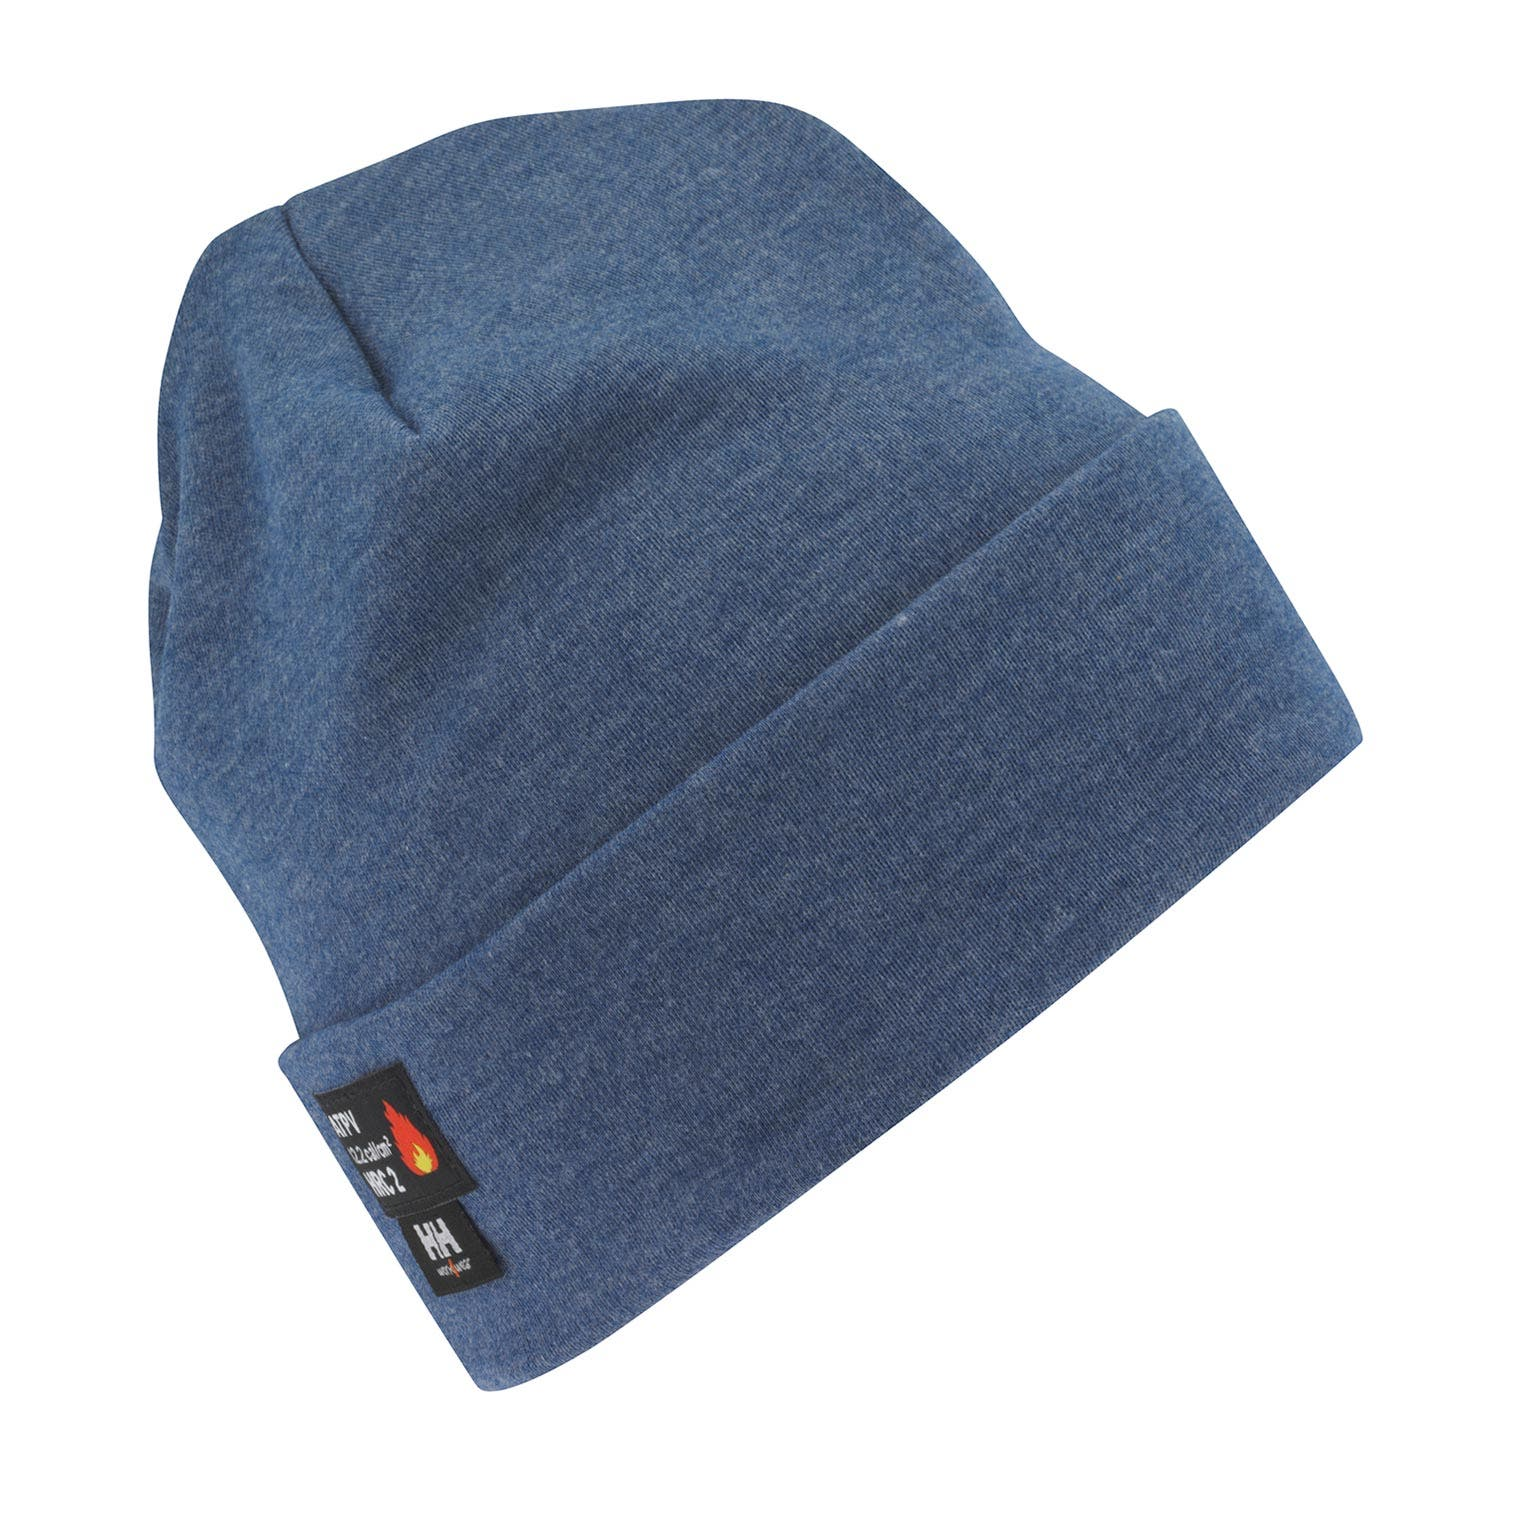 Helly Hansen Unisex Fargo Flame Retardant Tuque Hat in Navy from the front